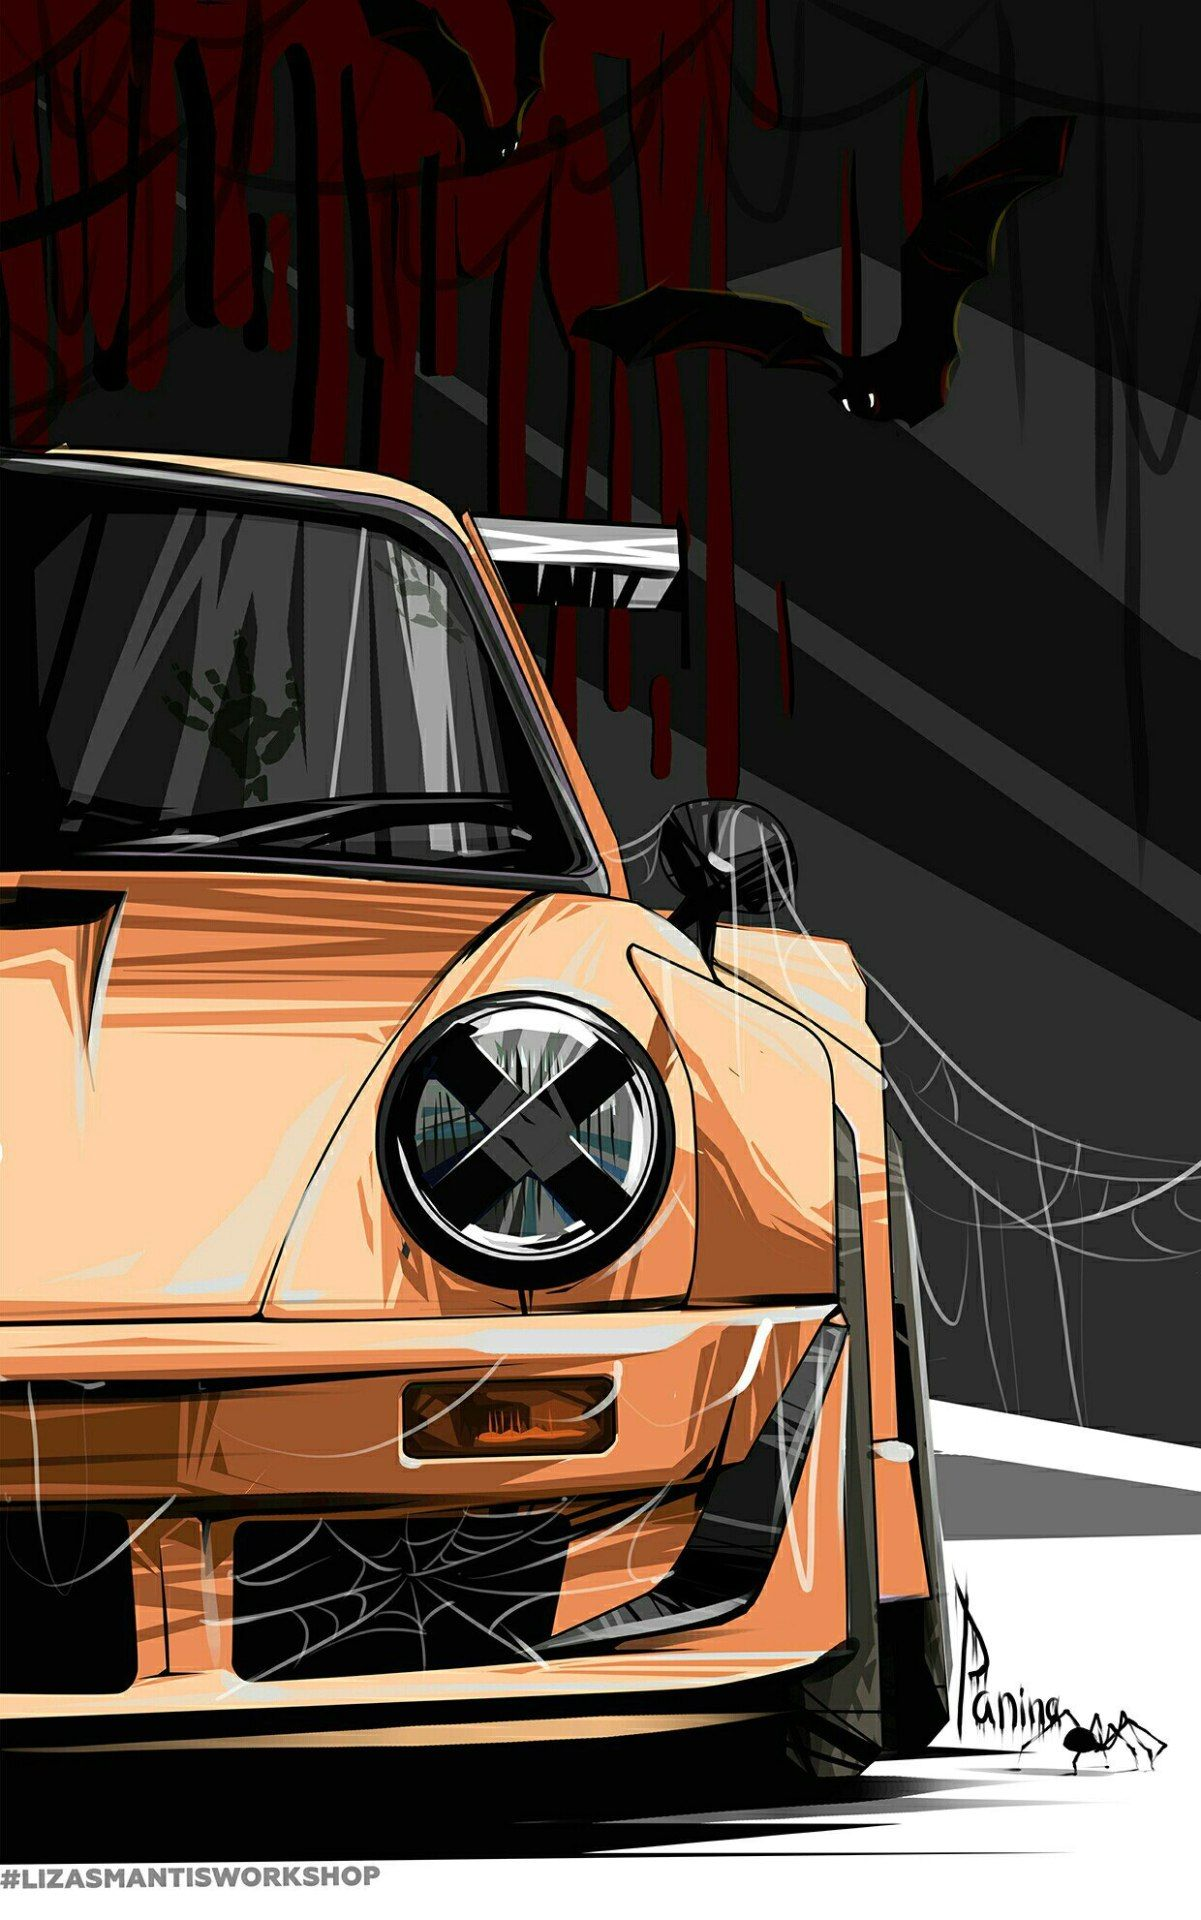 More Anime And Manga With Images Car Iphone Wallpaper Car